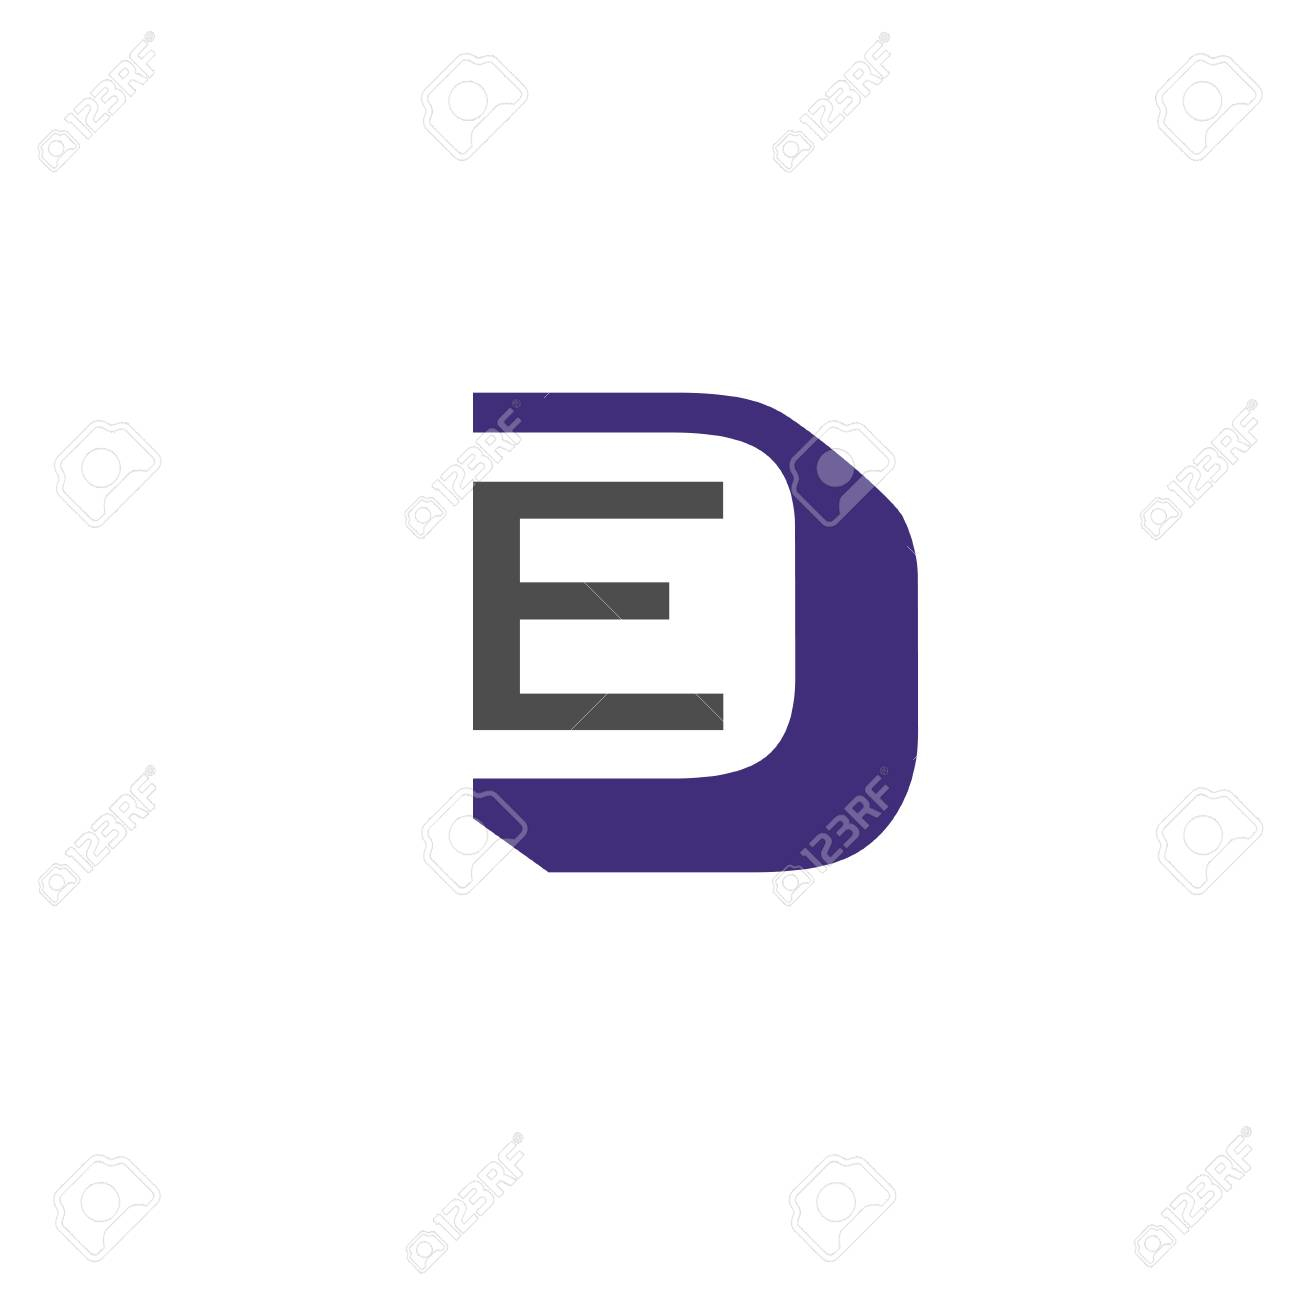 ed letter logo design vector illustration template e letter logo vector letter e and